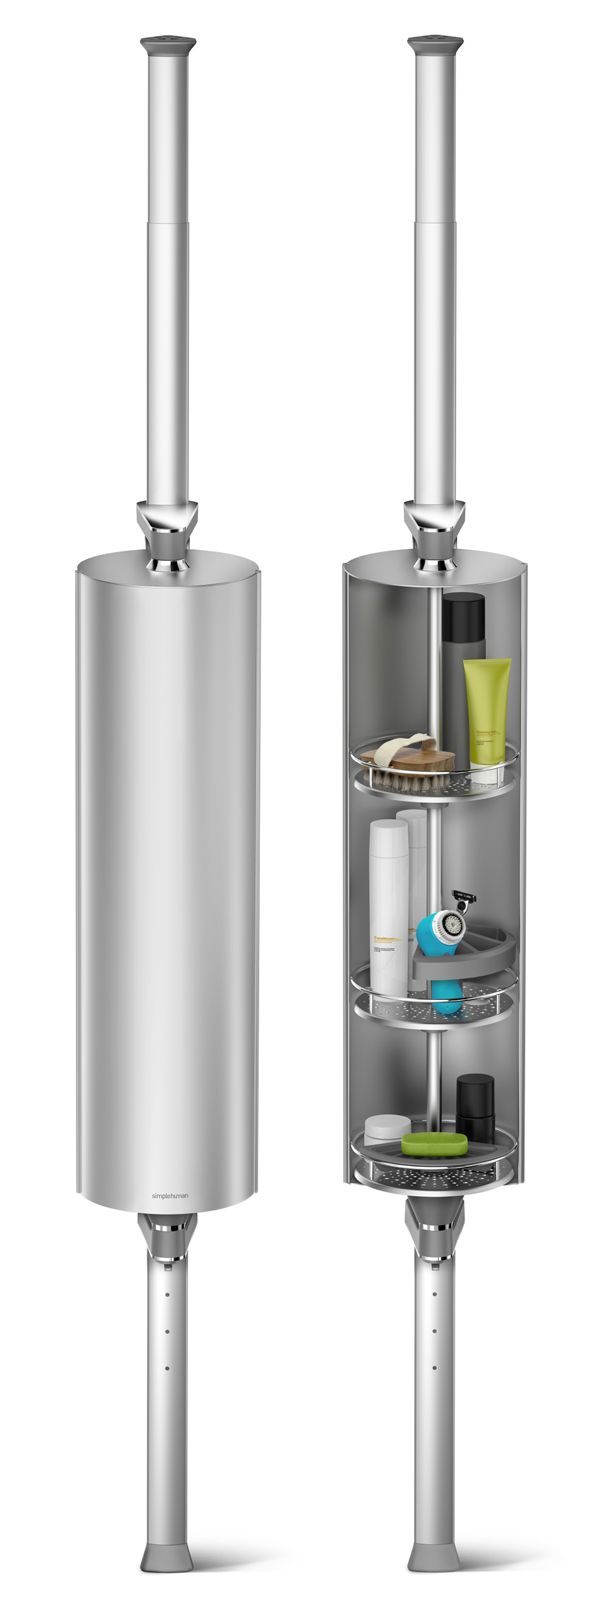 Have A Best Shower Caddy with Simplehuman Shower Caddy: Shower Caddy Solutions | Simplehuman Shower Caddy | Shampoo Holder In Shower